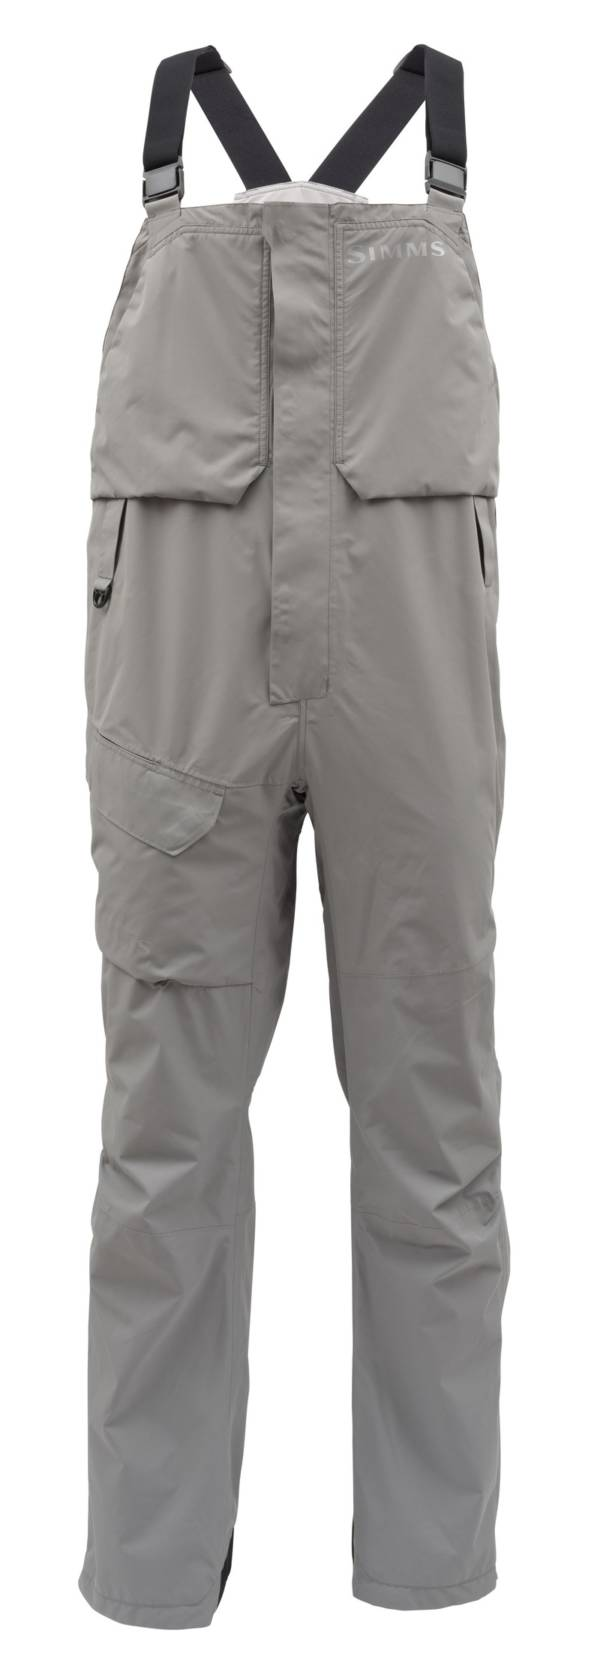 Simms Challenger Fishing Bib Apparel